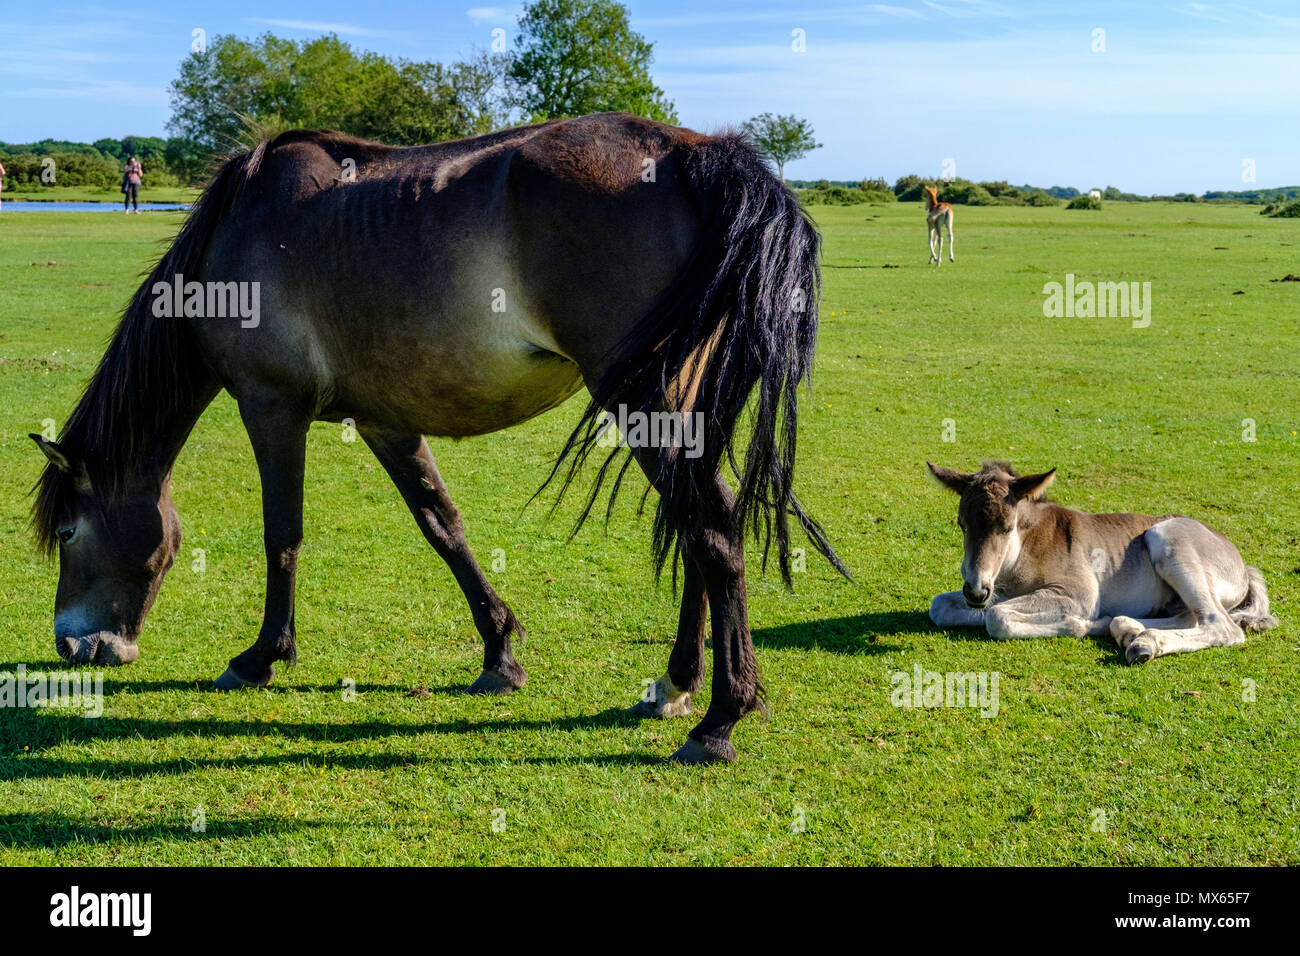 New Forest 2nd June 2018. New Forest Ponies with new born foals in glorious flaming June sunshine . The New Forest pony is one of the recognised mountain and moorland or native pony breeds of the British Isles. Height varies from around 12 to 14.2 hands; ponies of all heights should be strong, workmanlike, and of a good riding type. Credit Paul Chambers  Alamy LiveNews - Stock Image